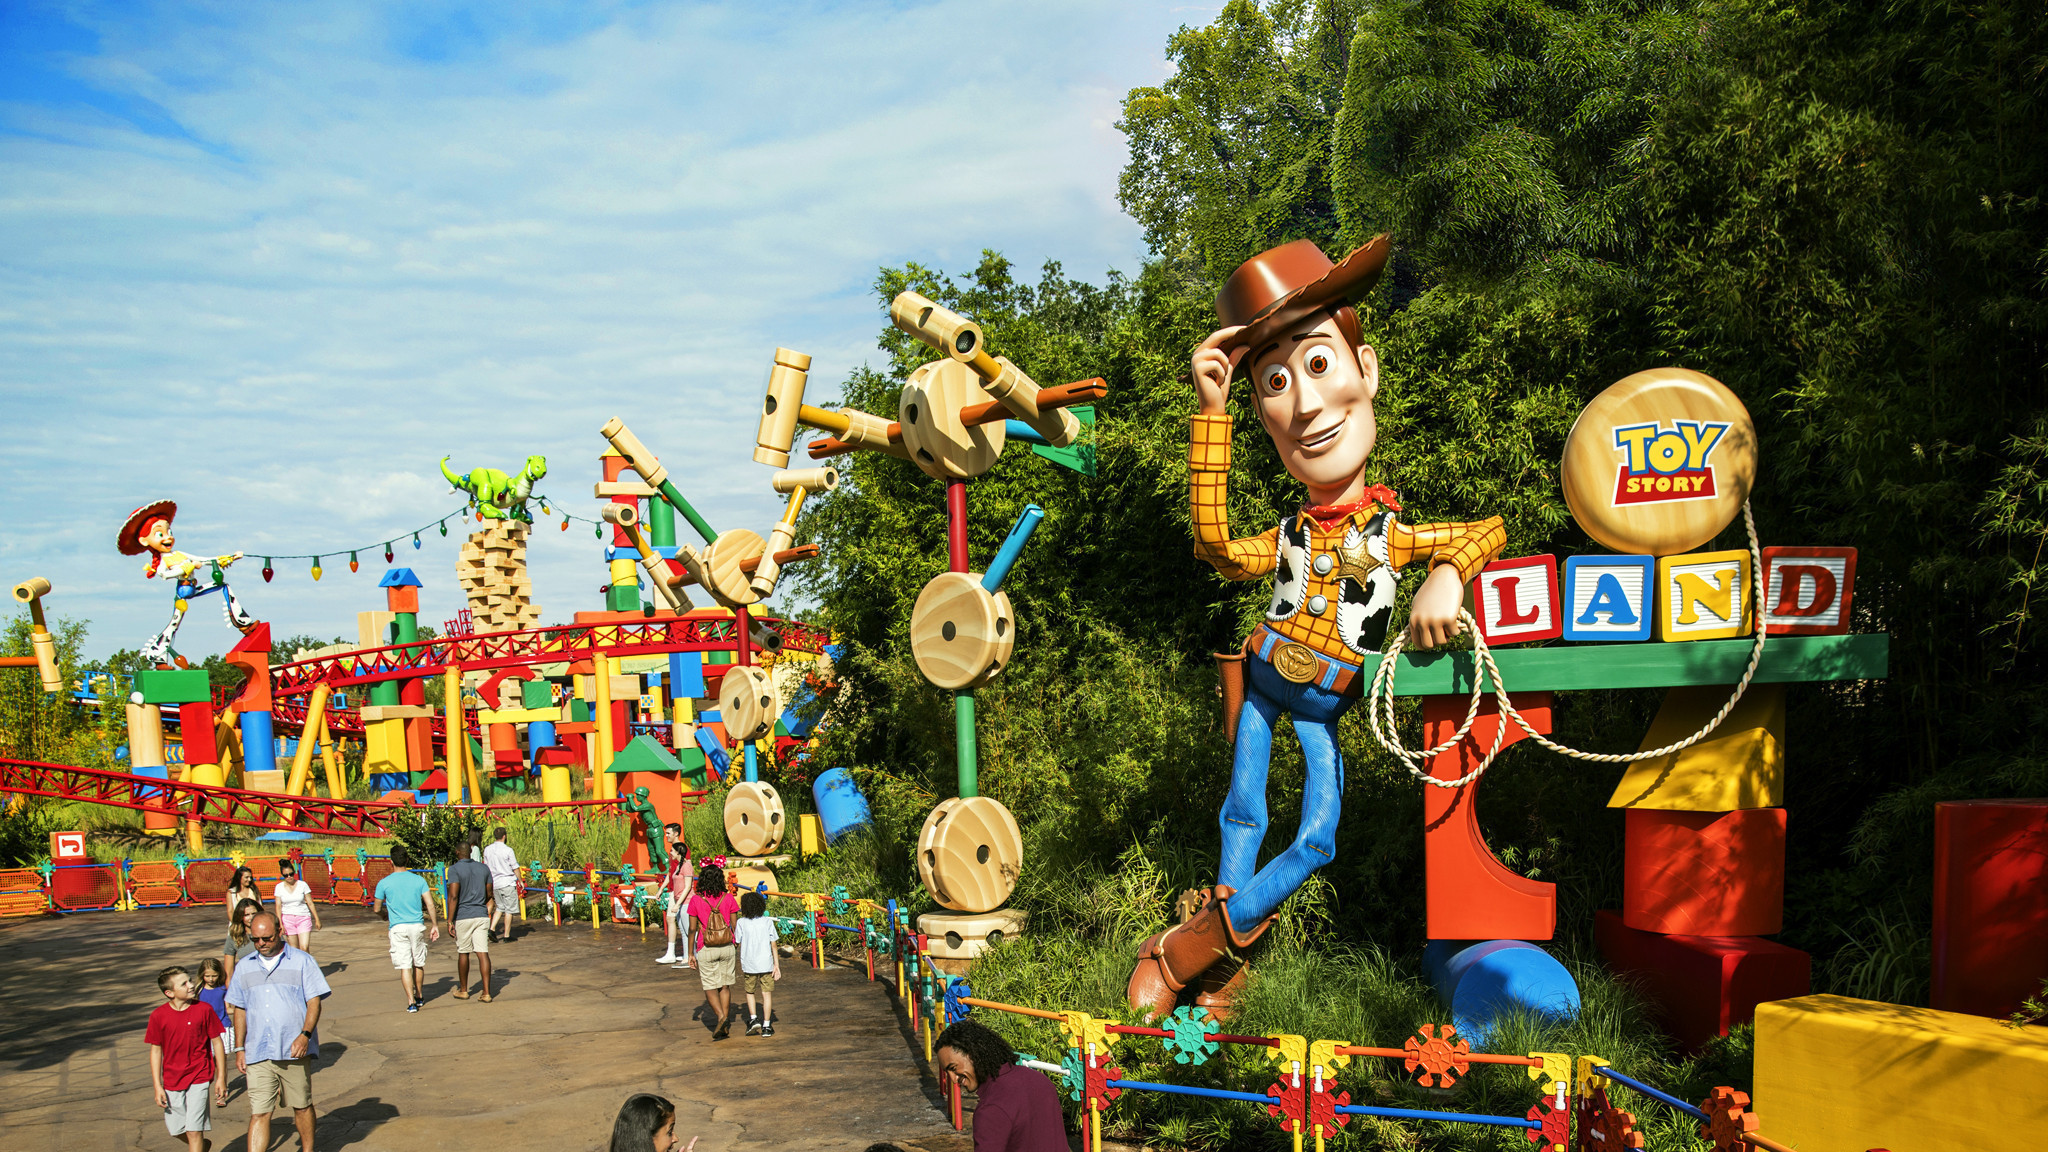 Experience the Most Magical Places in Orlando Like the Brand-New Toy Story Land at Walt Disney World's Hollywood Studios with a Spacious Westgate Resorts Villa Close to Theme Parks!